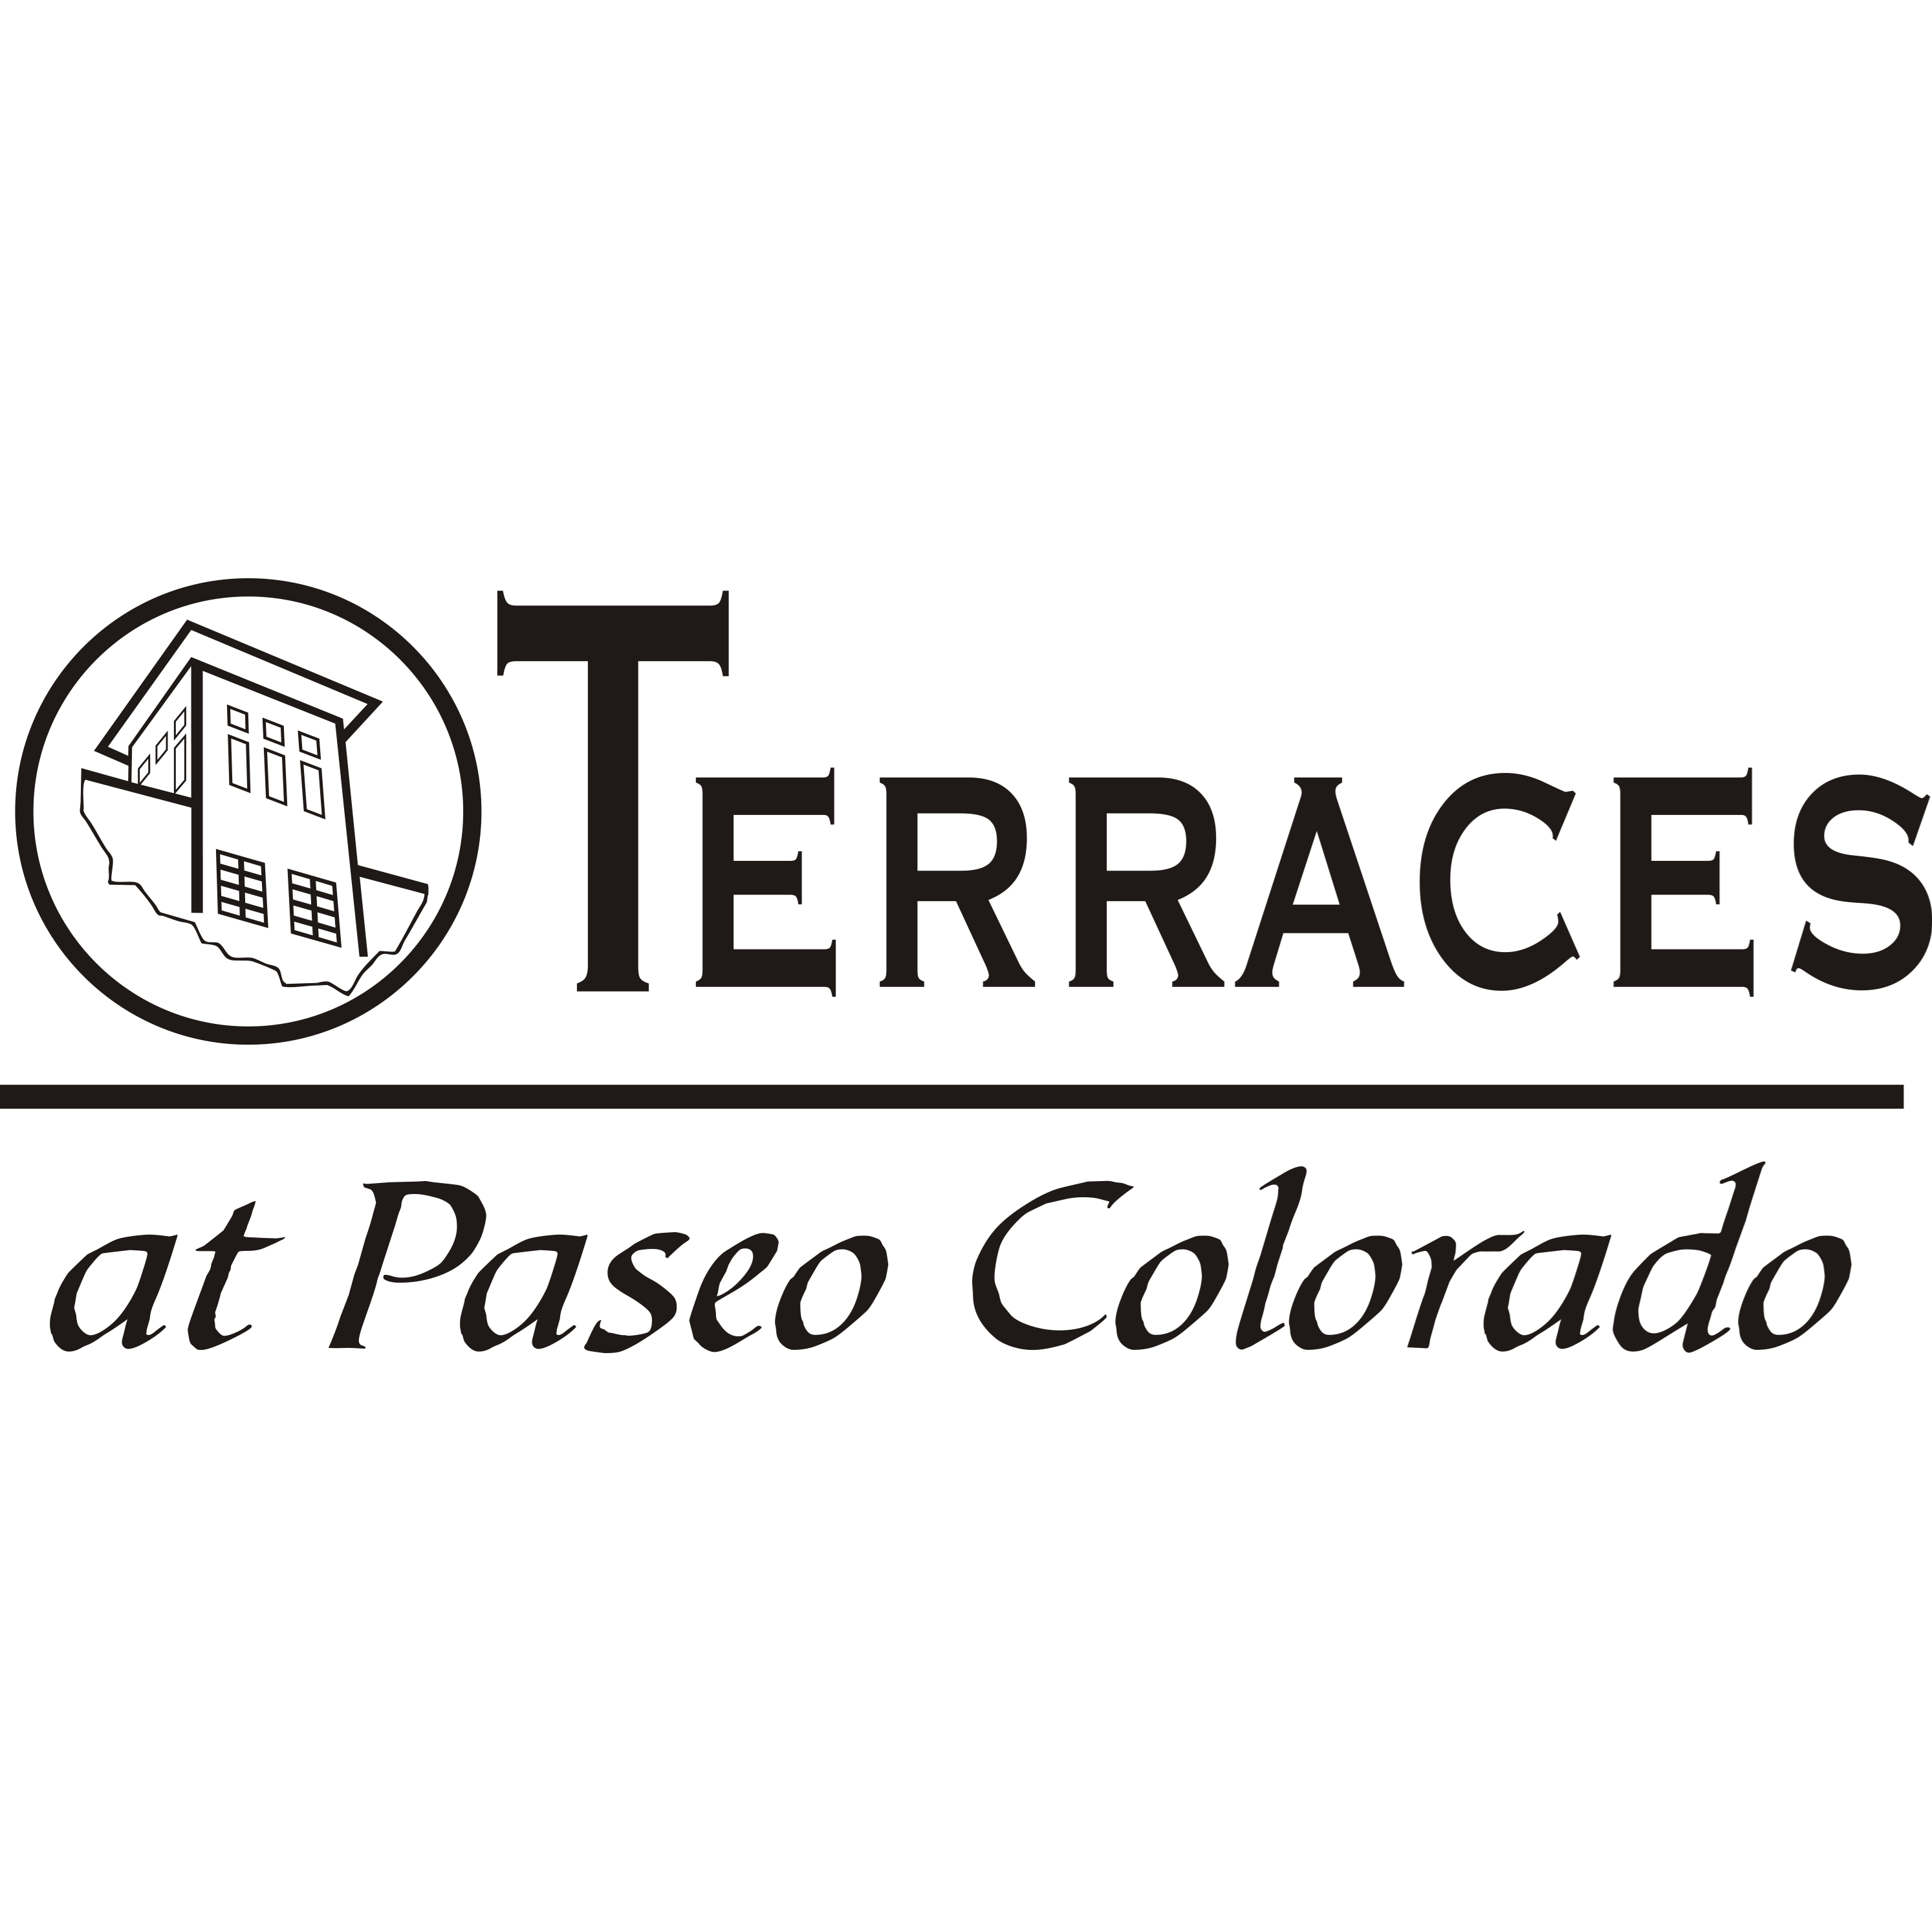 Terraces at Paseo Colorado image 10